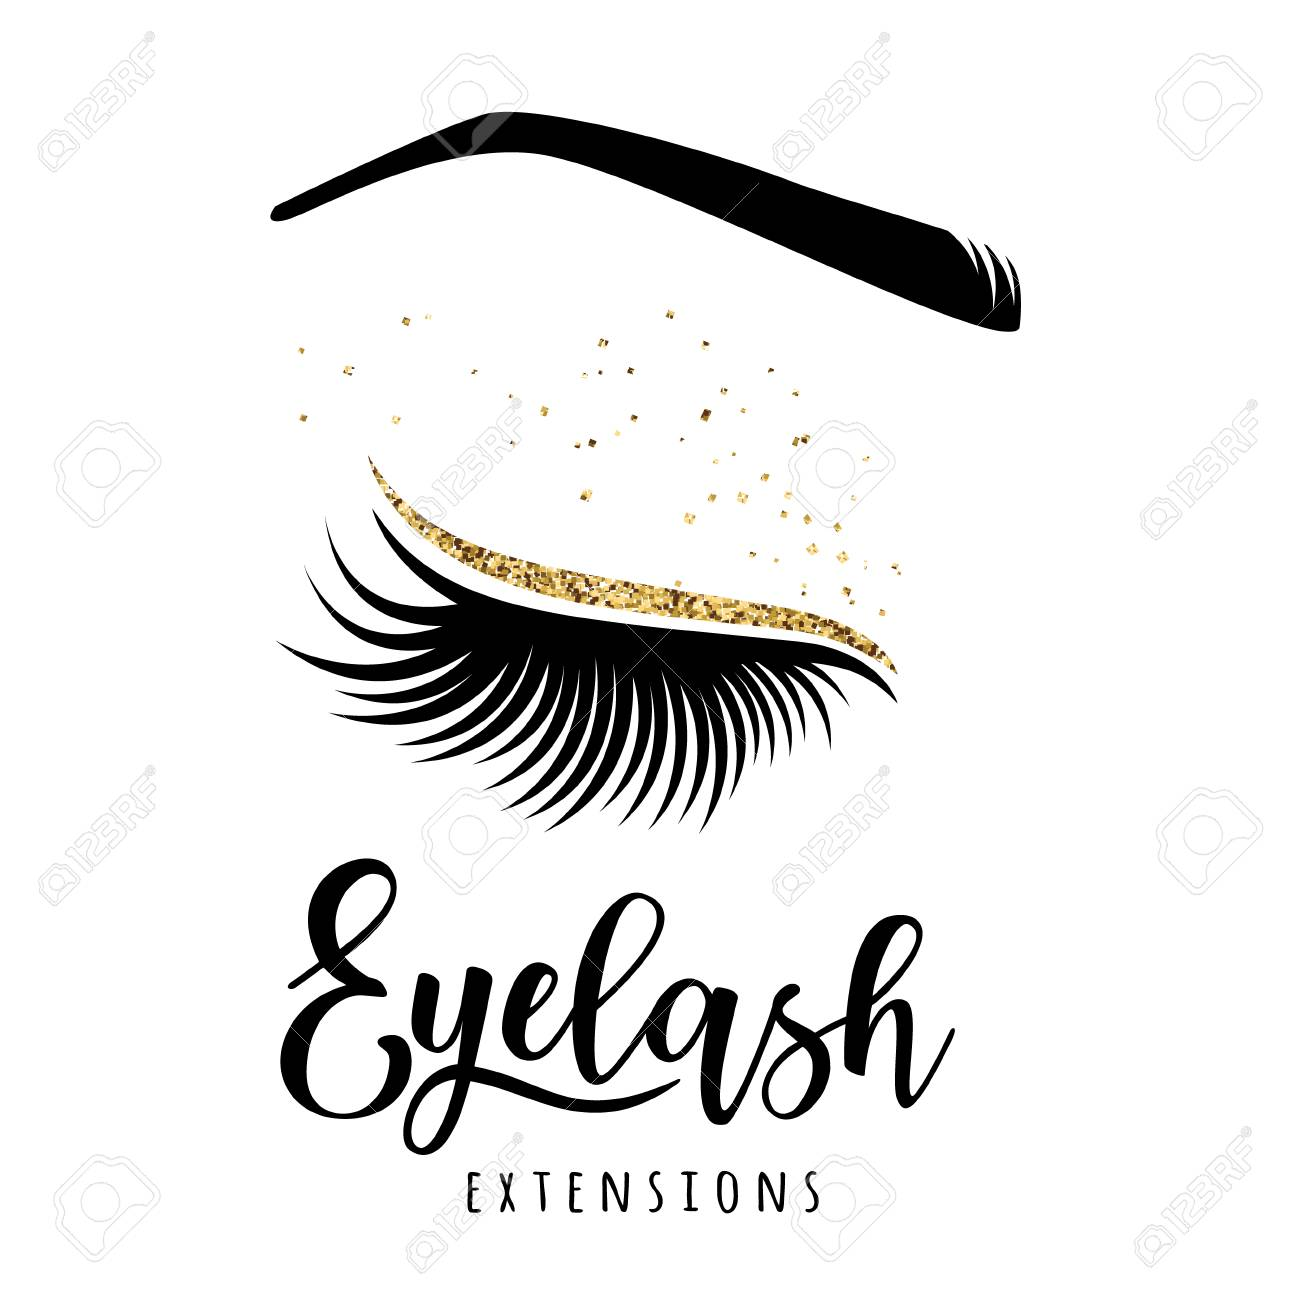 164bf93e5de Eyelash extensions logo. Vector illustration of lashes. For beauty salon,  lash extensions maker